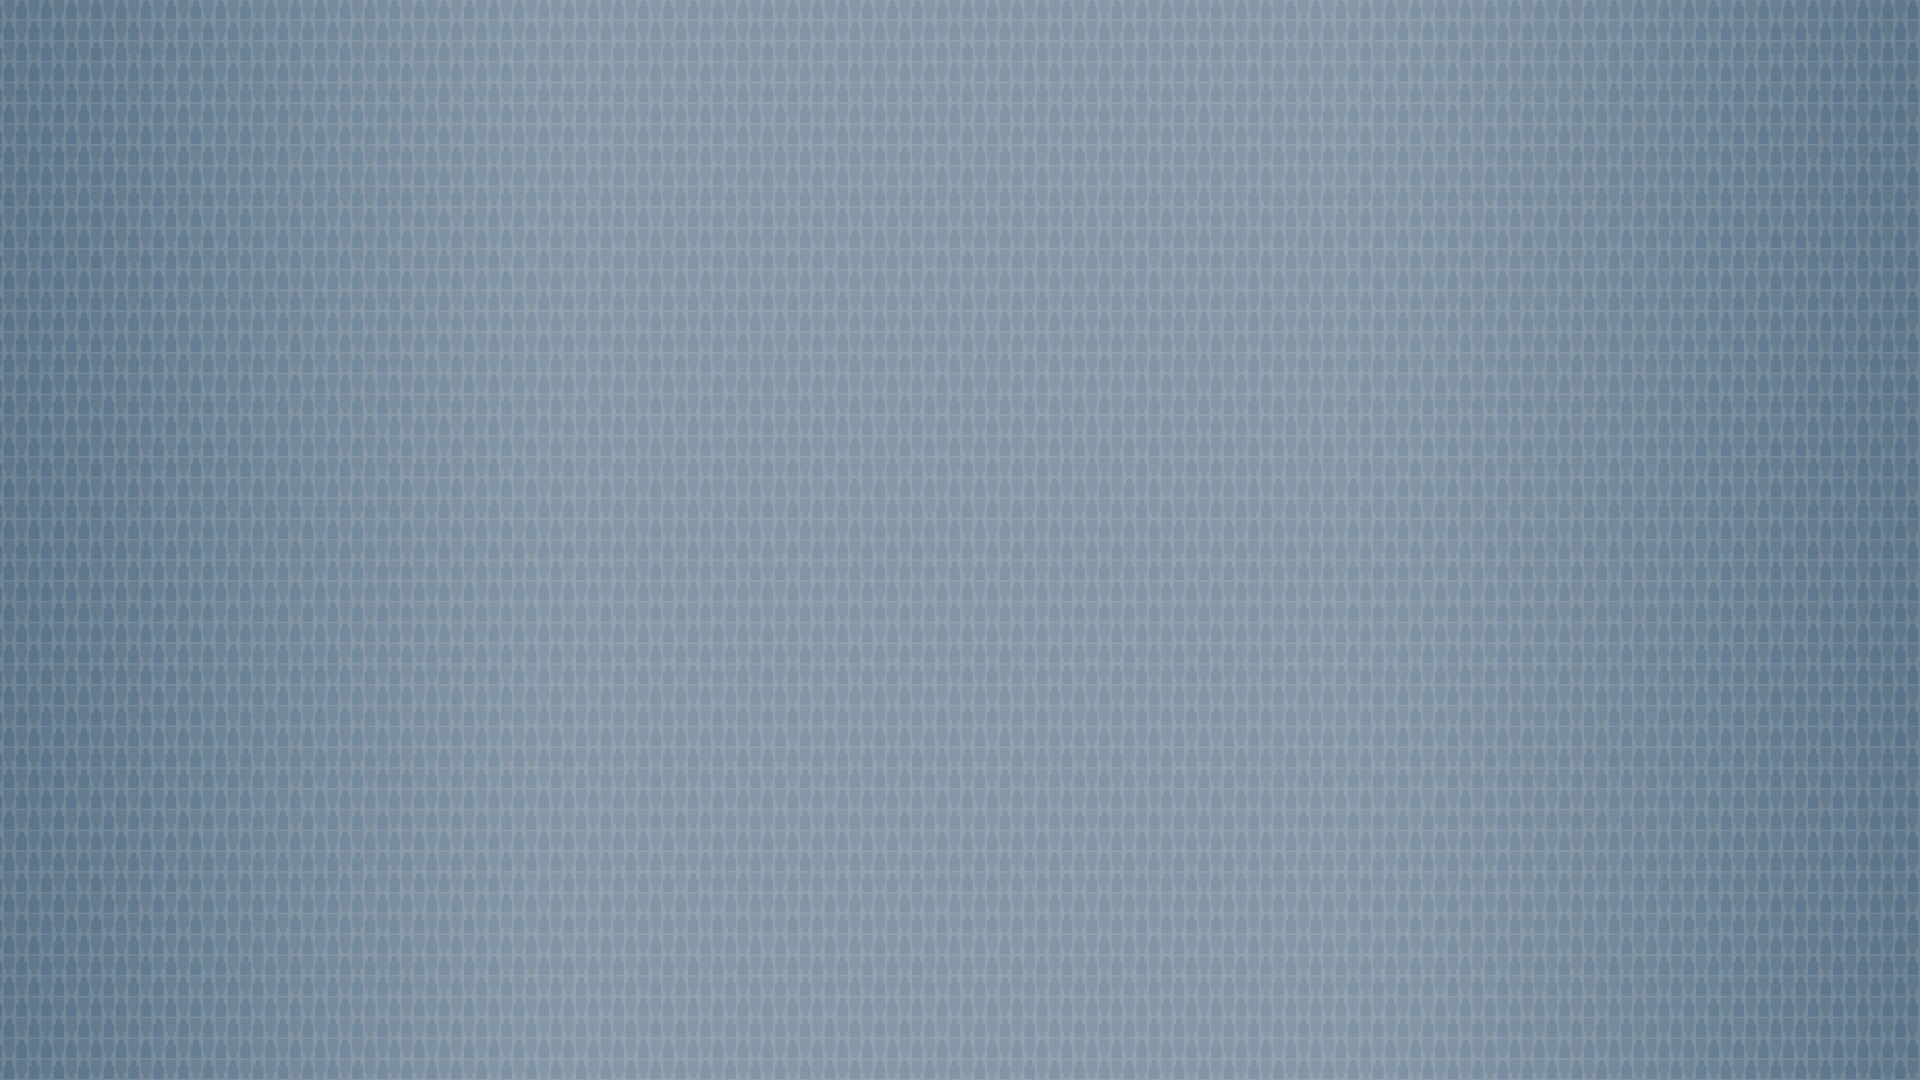 Gray patterned background